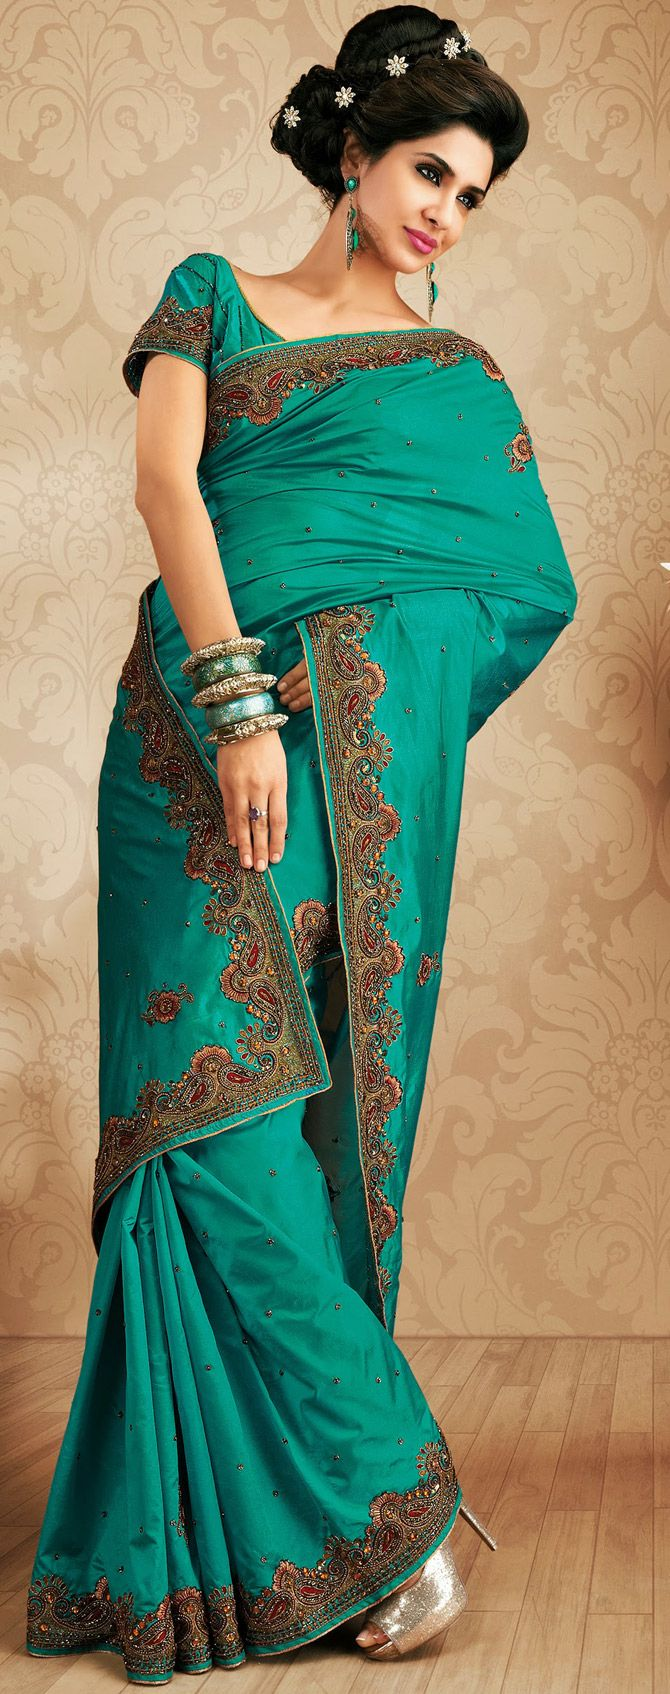 #SouthIndian Cyan Blue #Silk #Saree for Party Occasion